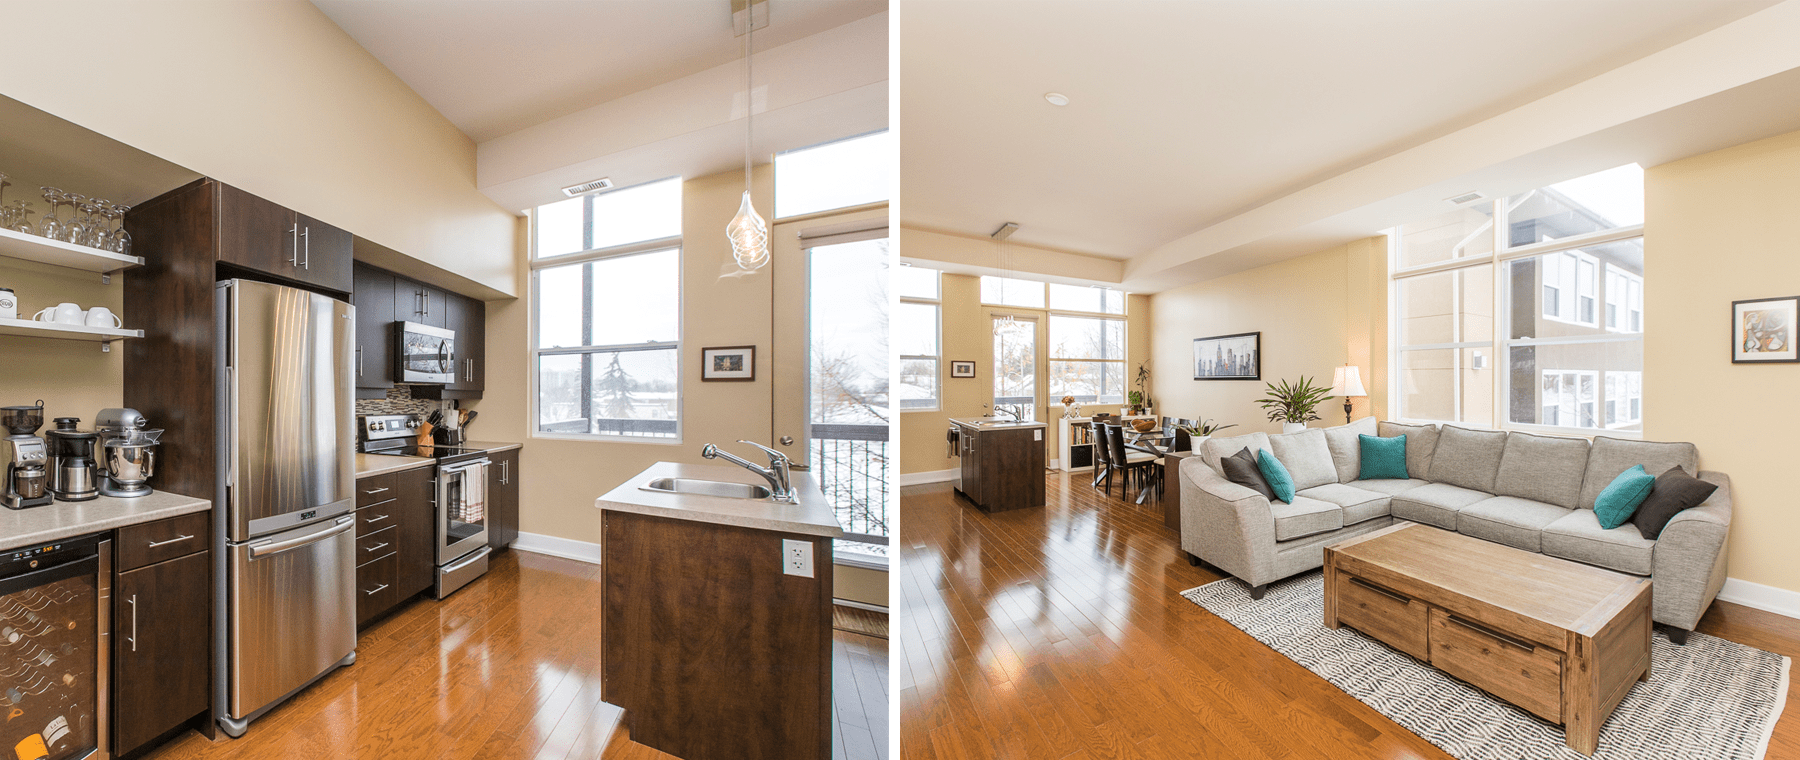 Condo of the Week: $295,000 for Vanier loft in historical École Cadieux